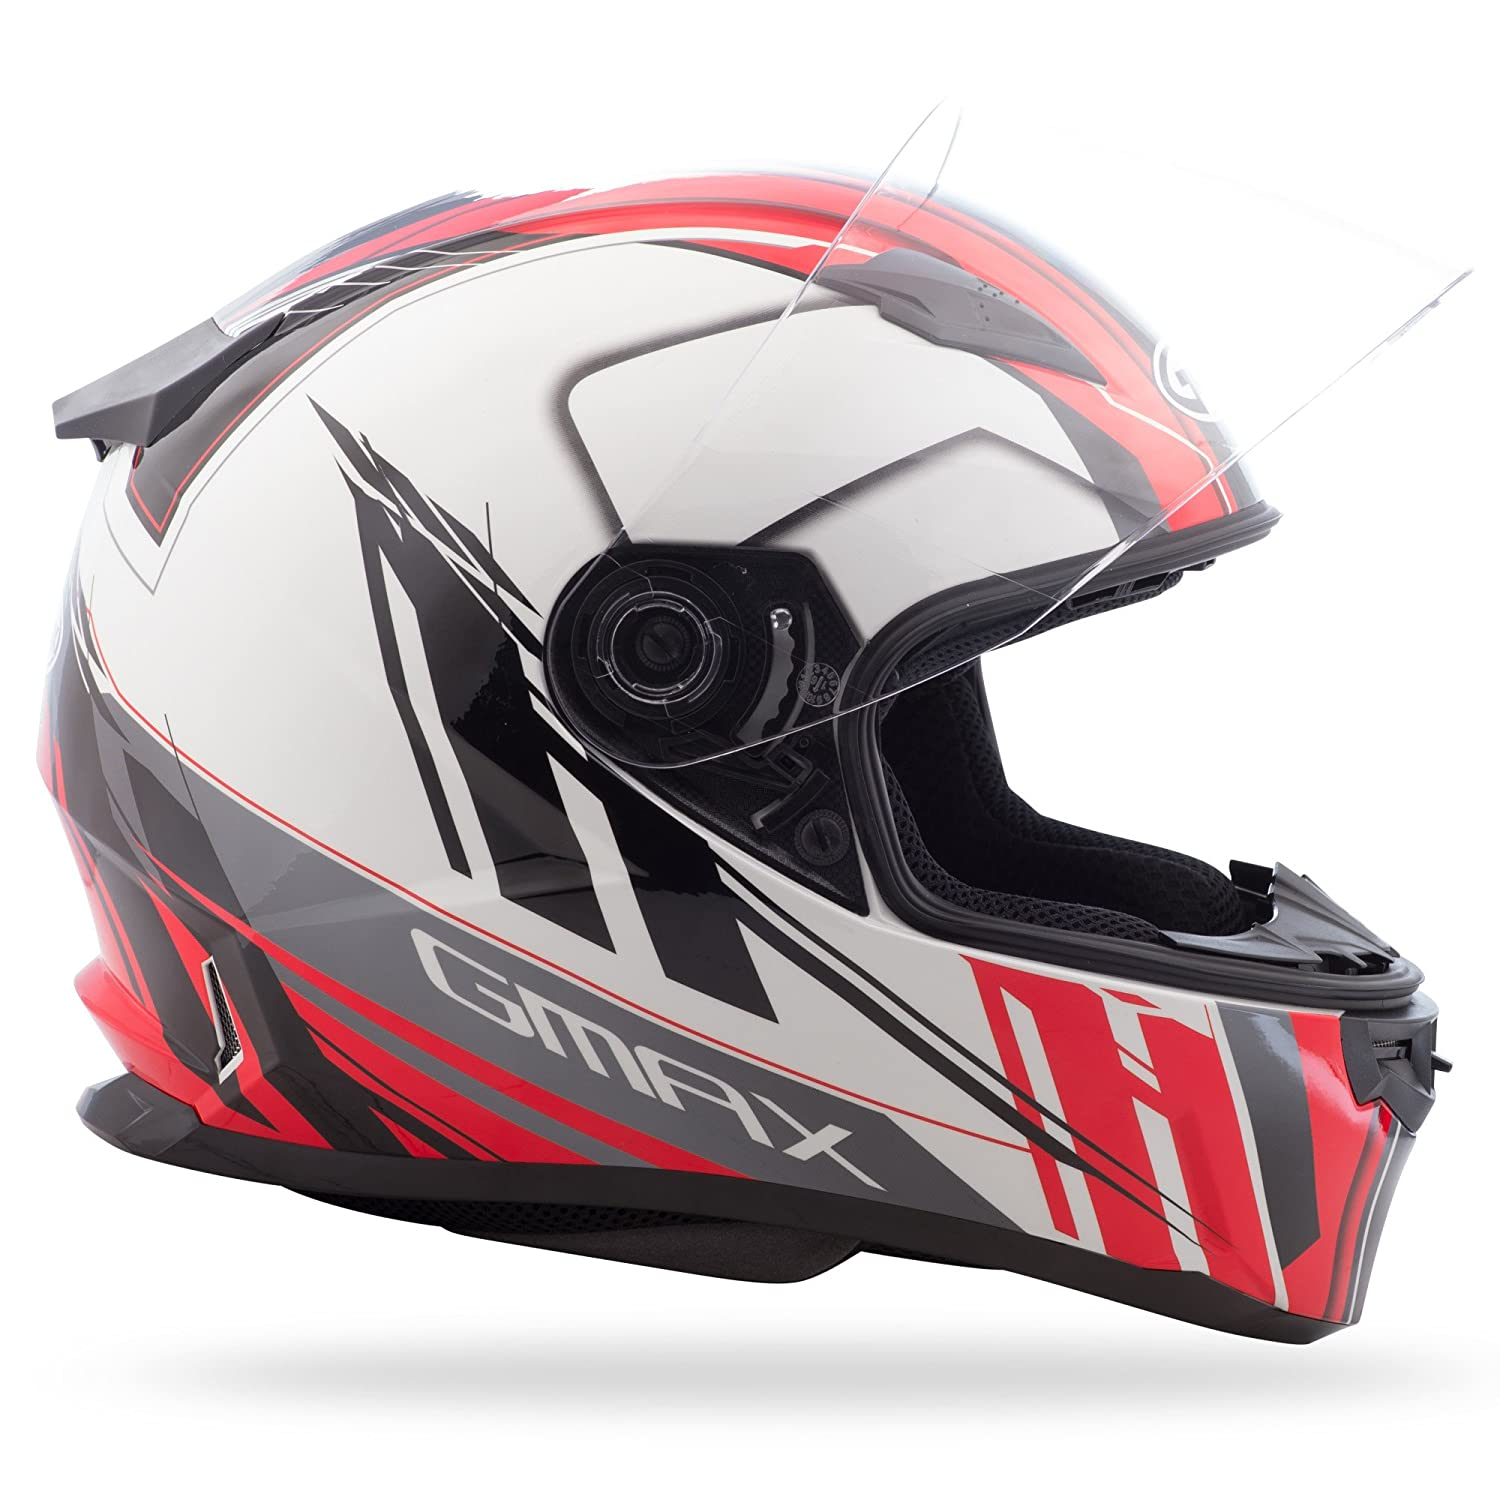 GMAX Unisex-Adult Full-face Style G7493203 TC-1 Ff49 Rogue Street Helmet White//Red xs X-Small G7493203TC-1